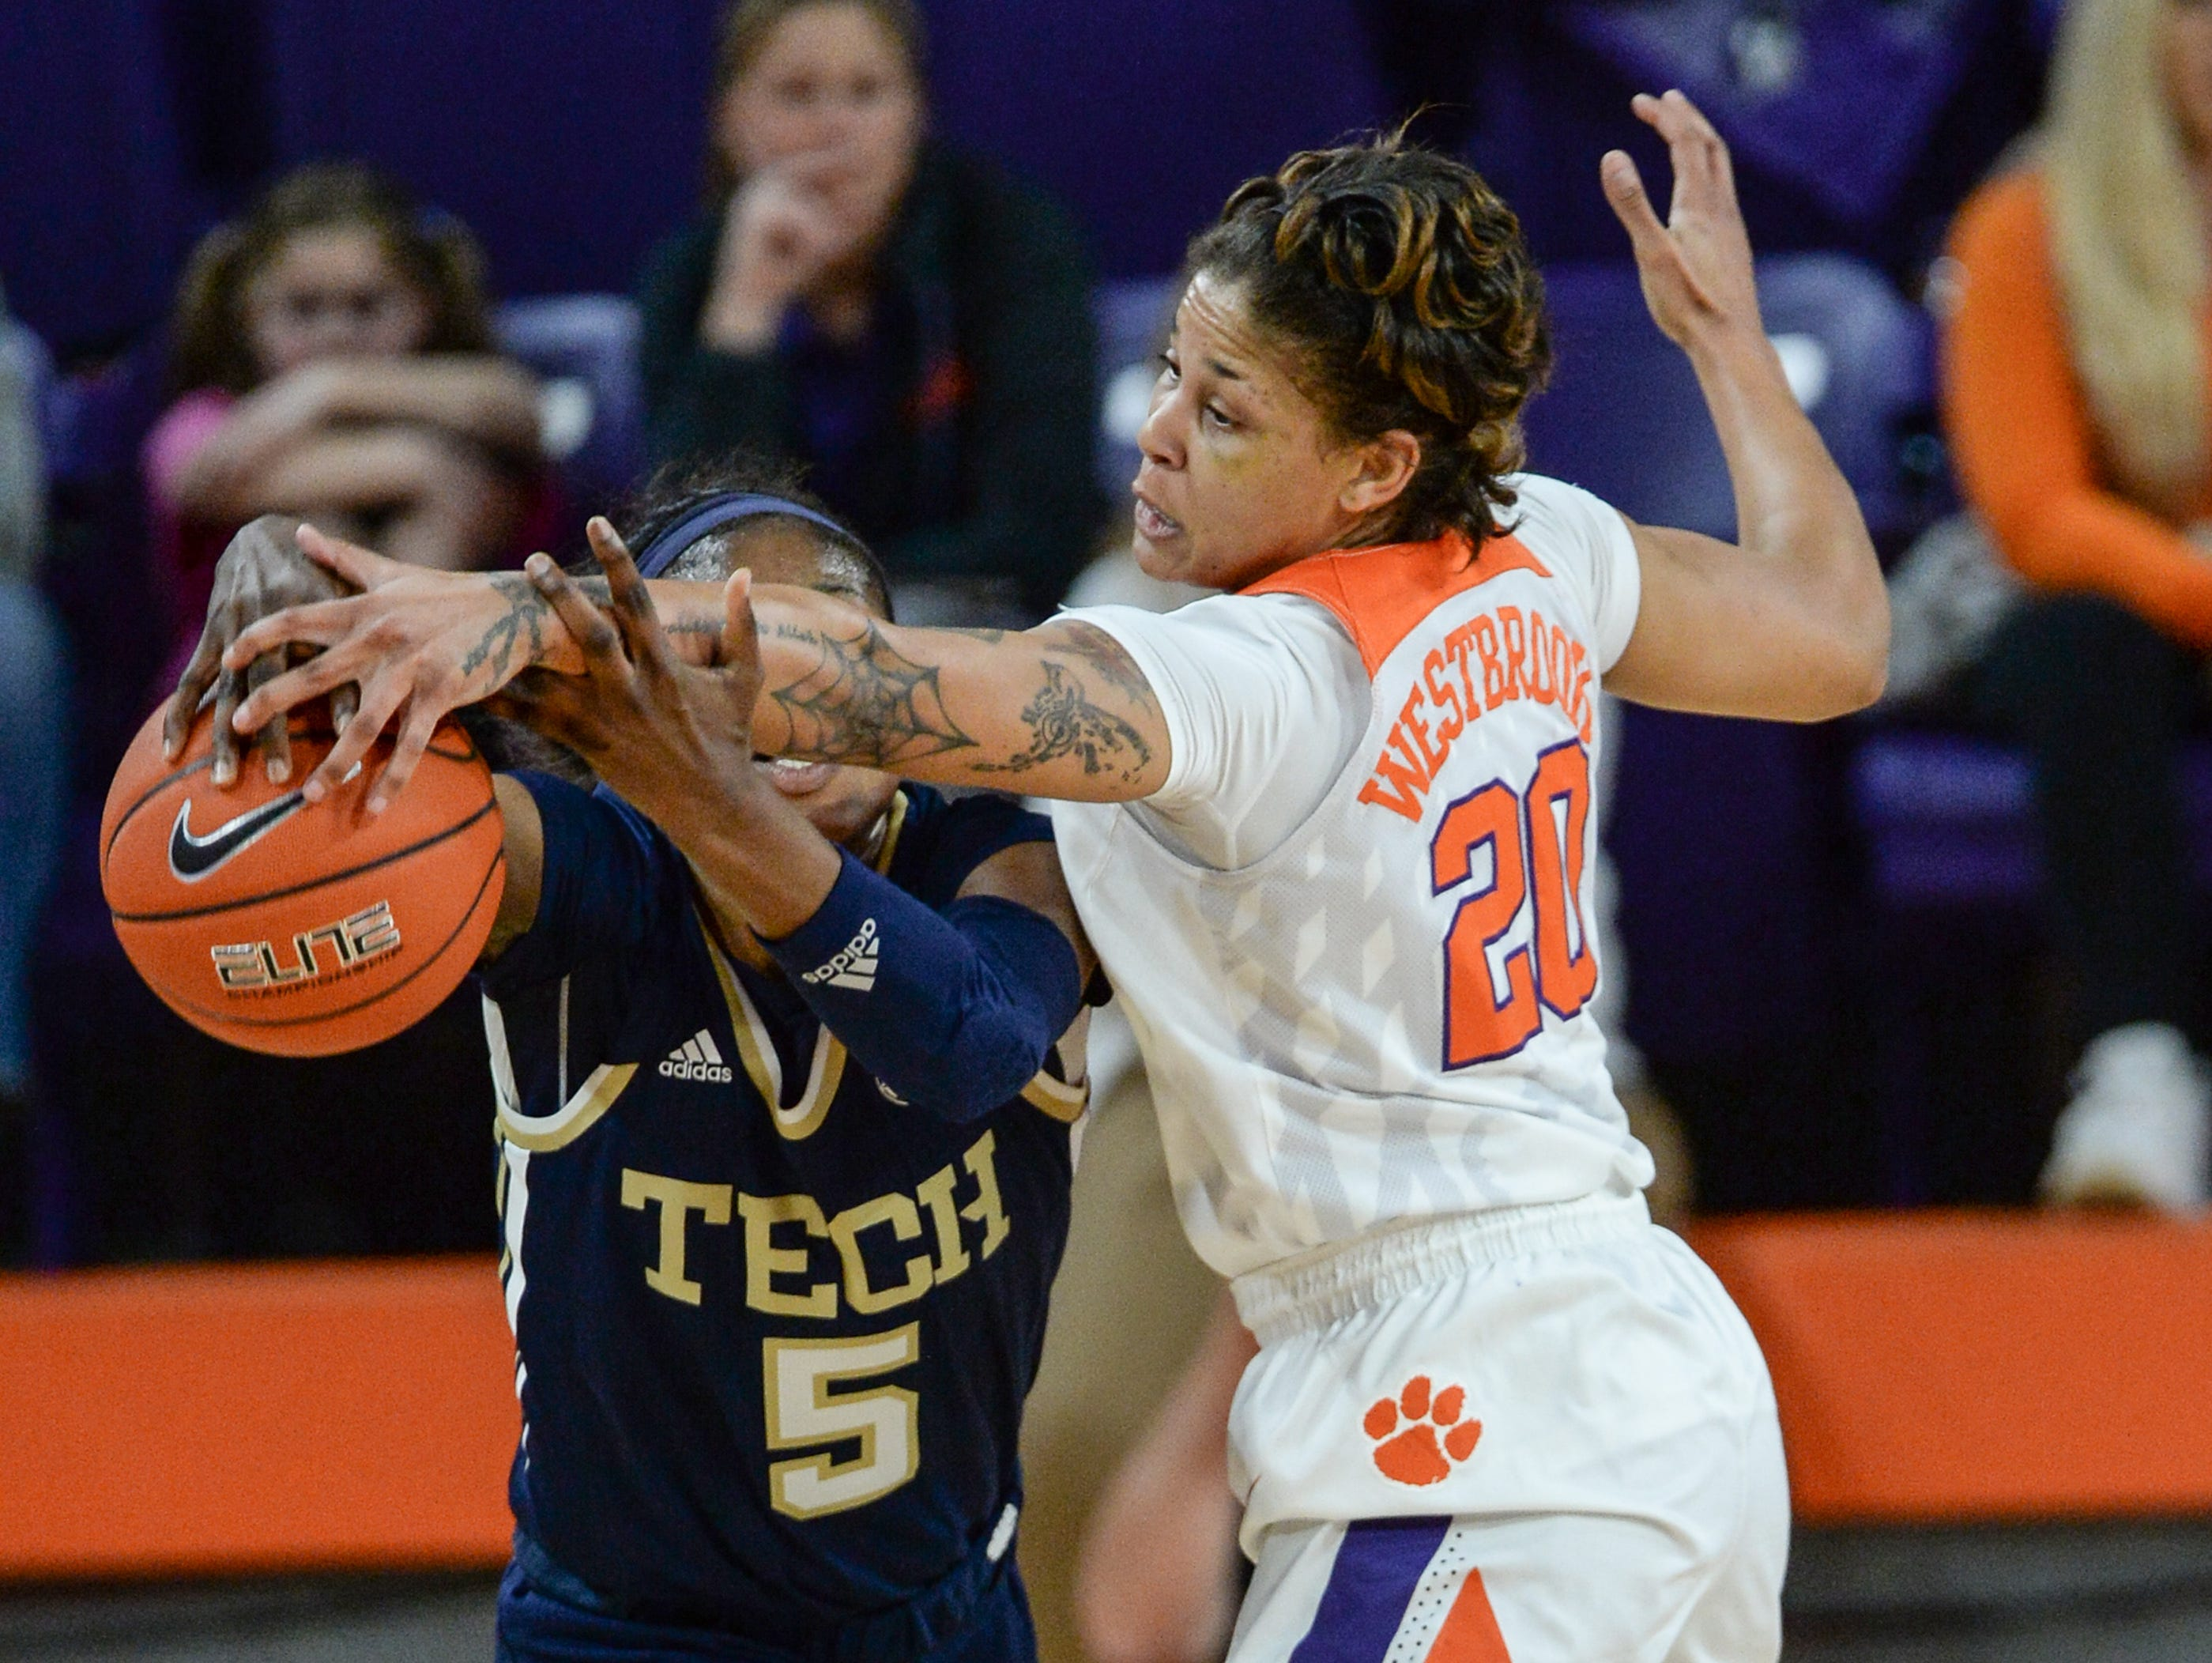 Clemson guard Simone Westbrook(20) defends Georgia Tech guard Liz Balogun(5) during the second quarter at Littlejohn Coliseum in Clemson Thursday, January 17, 2019.